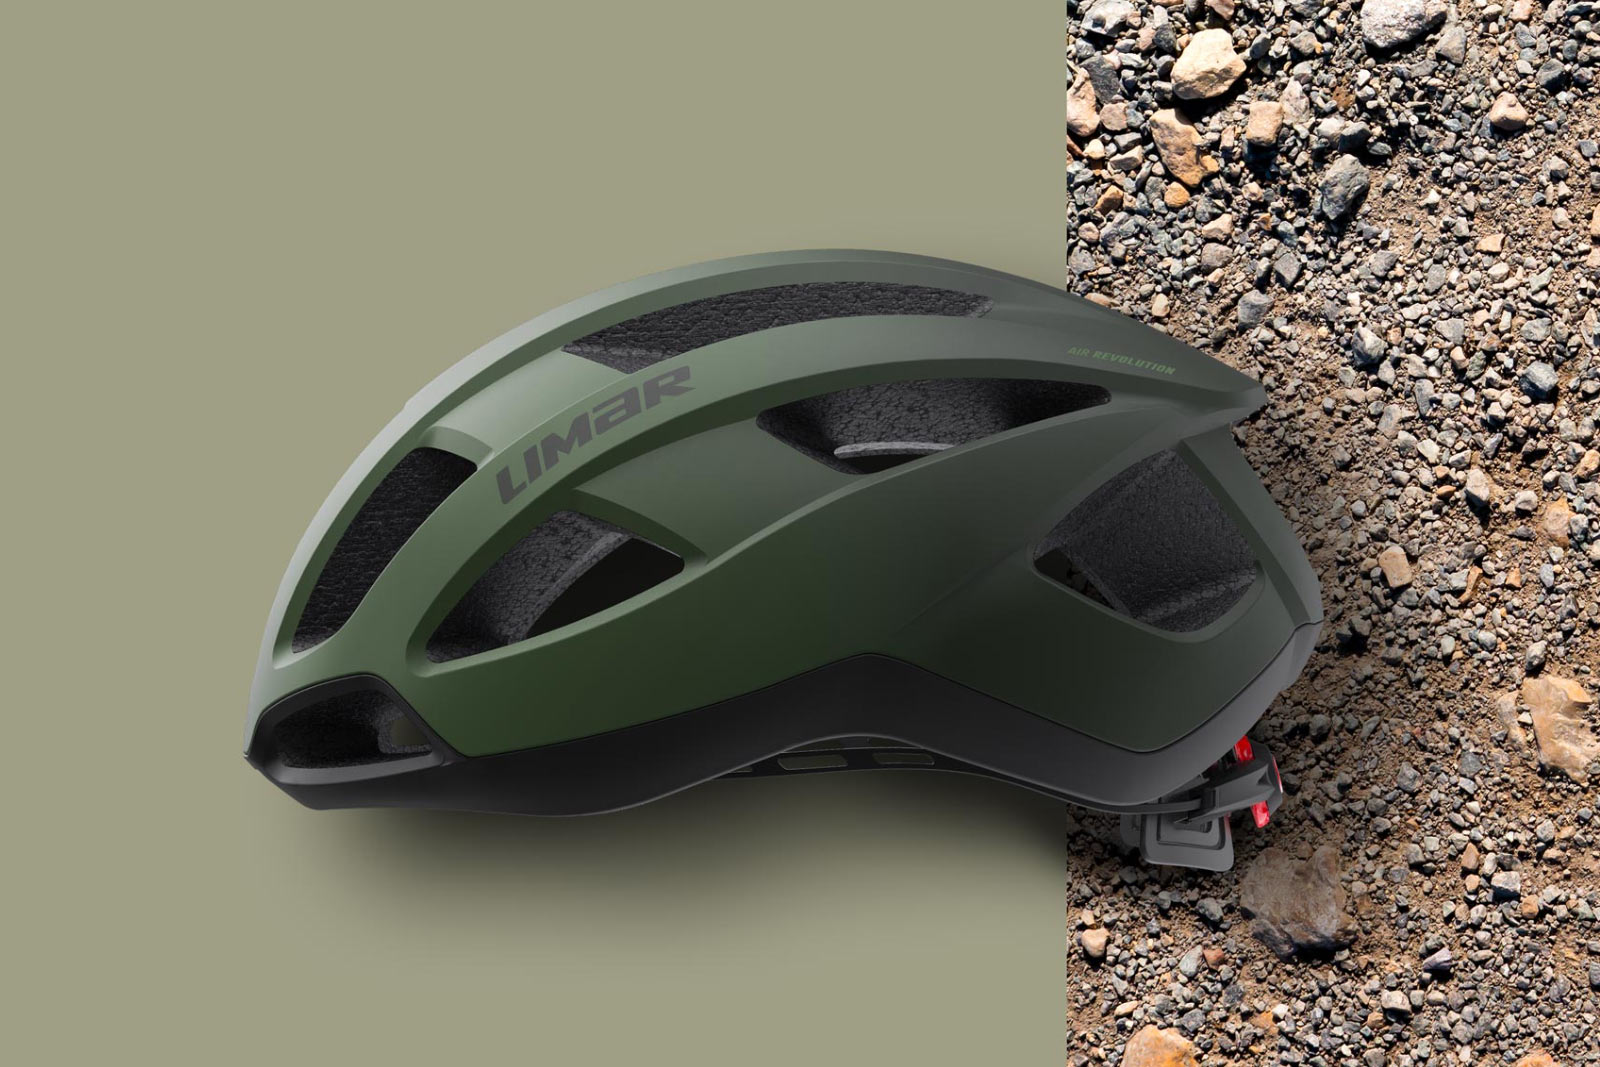 new limar air stratos road bike helmet for gravel riding and more